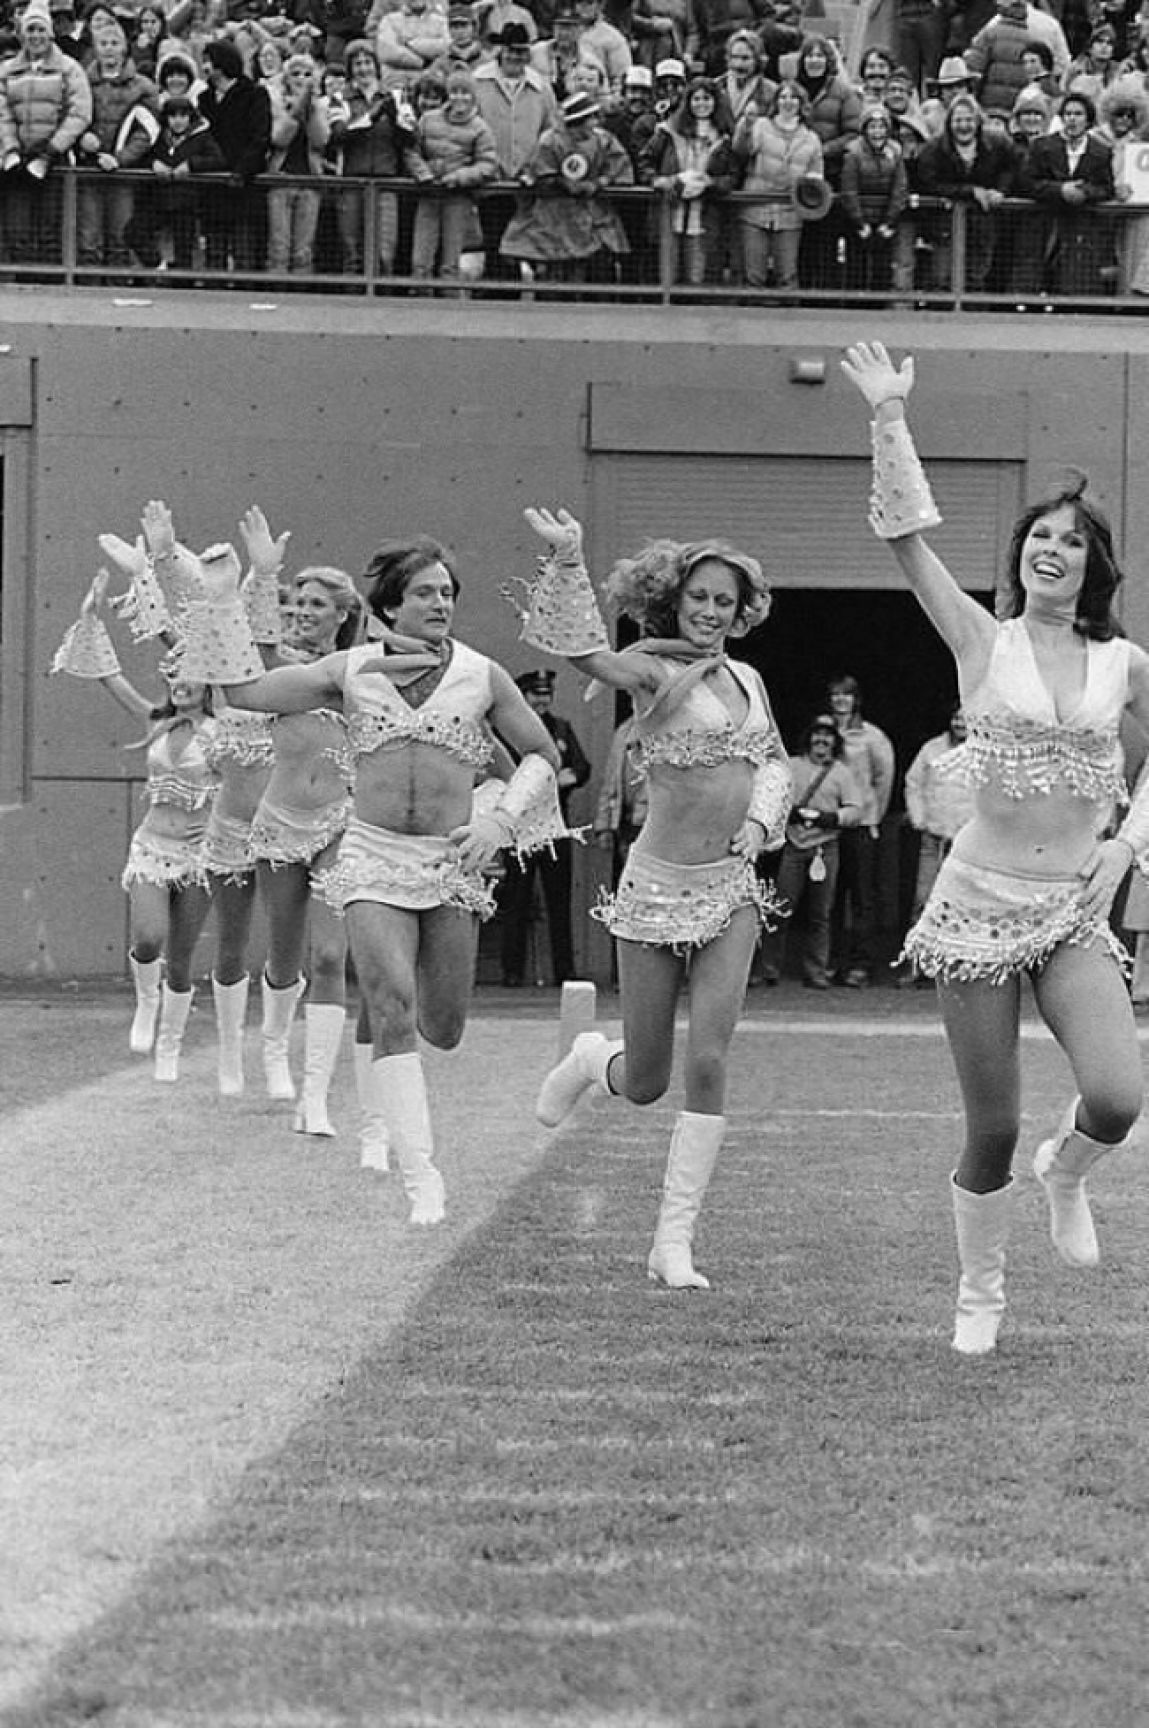 robin-williams-dressed-like-a-cheerleader-1980